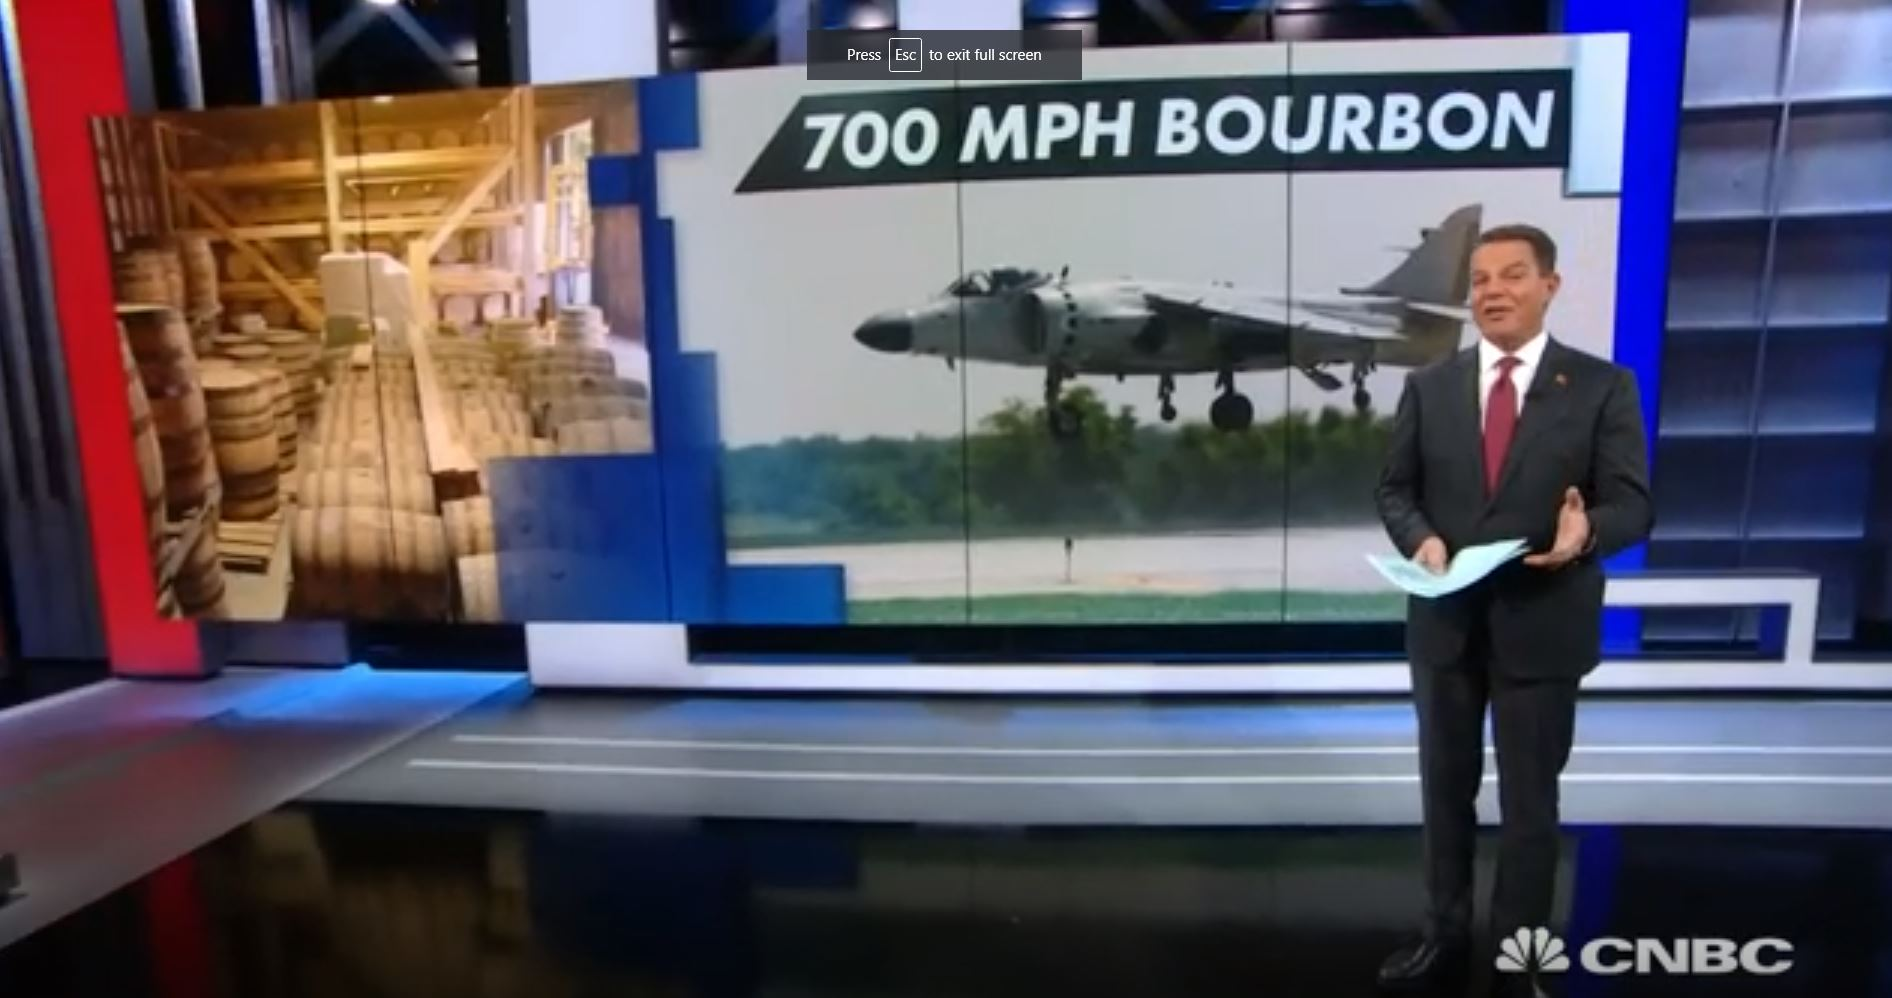 700MPH Bourbon Featured on CNBC